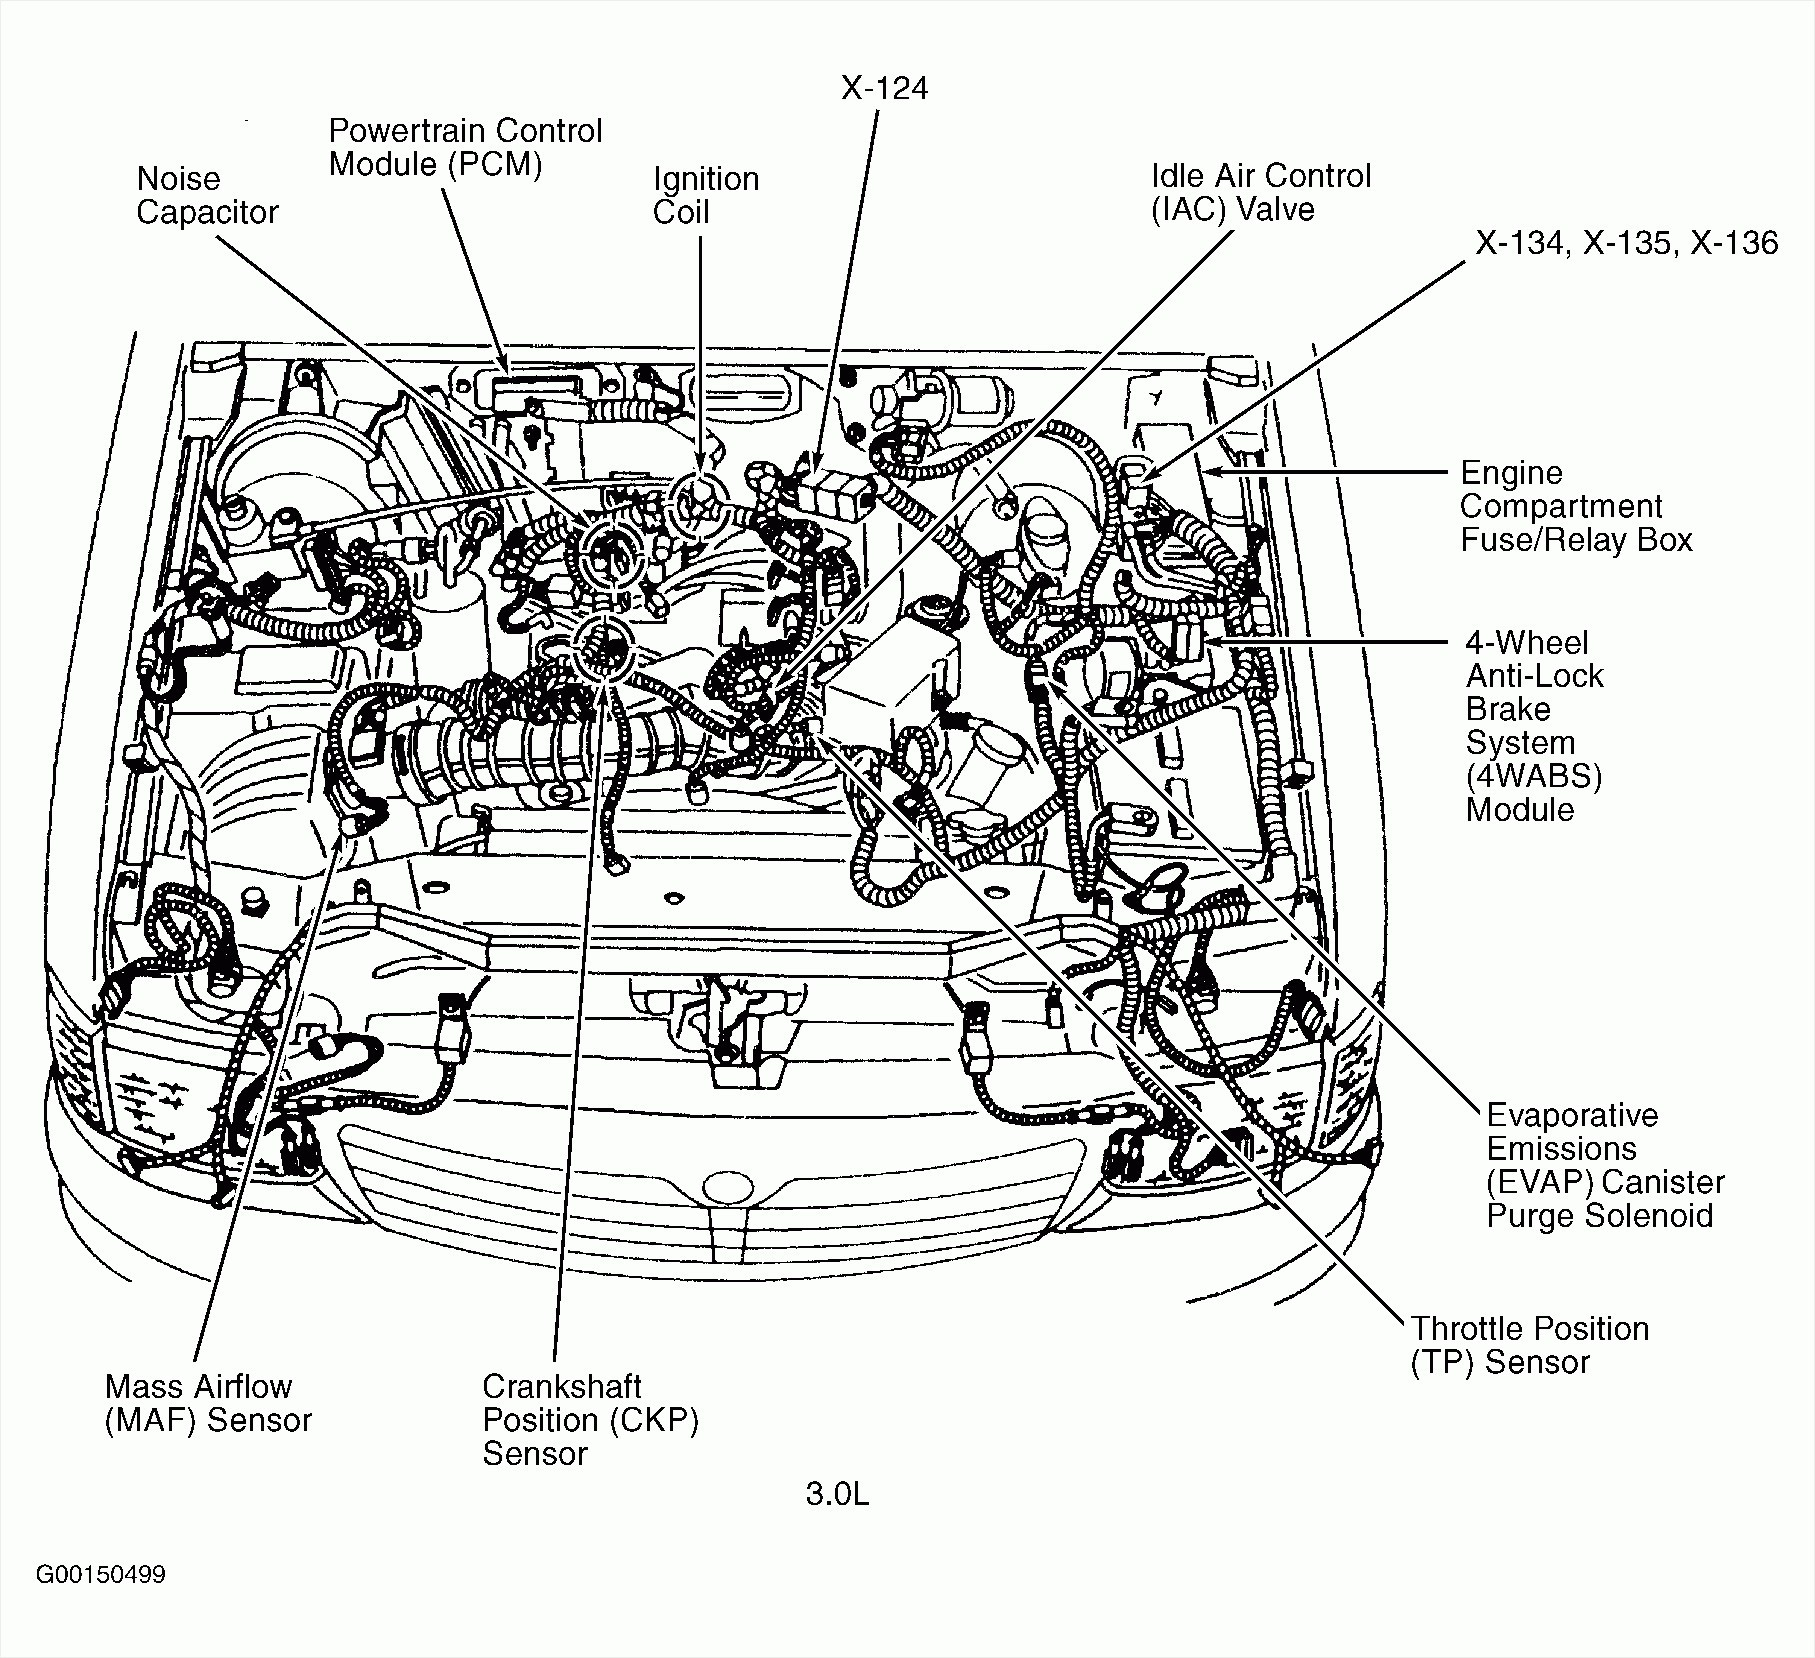 3 1 Engine Diagrams Sensor Locations | Wiring Diagram  Ford F L Engine Diagrams on ford f-150 2004 5.4 vacuum diagram, lincoln 4.6 engine diagram, ford 2.3 liter timing marks, f150 5.4 vacuum diagram, 93 f150 vacuum diagram, ford f-150 cooling system diagram, 2001 ford f-150 suspension diagram, 4.6 liter engine diagram, ford 5.4 cooling diagram, lincoln ls v8 engine diagram, ford f-150 transmission diagram, ford 4 cylinder performance, 1992 ford f-150 vacuum diagram, ford e 150 engine diagram, f150 engine diagram, 1997 f150 vacuum line diagram, ford motor parts diagram, ford body parts diagram, ford f-150 parts diagram, diesel truck engine diagram,